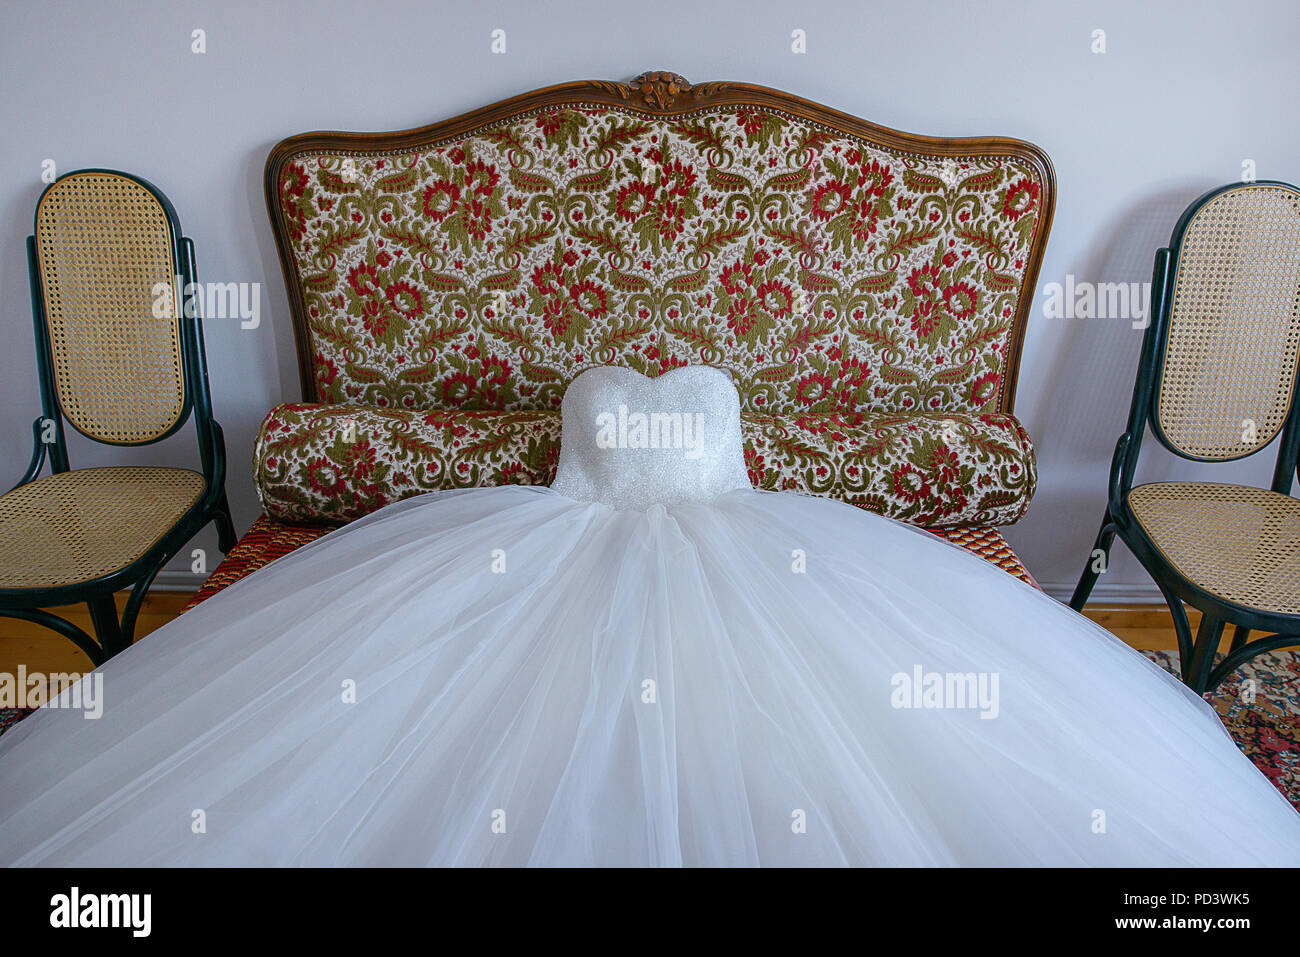 Stunning ball gown wedding dress spread on a small sofa, ready for the bride in preparation for the big day Stock Photo